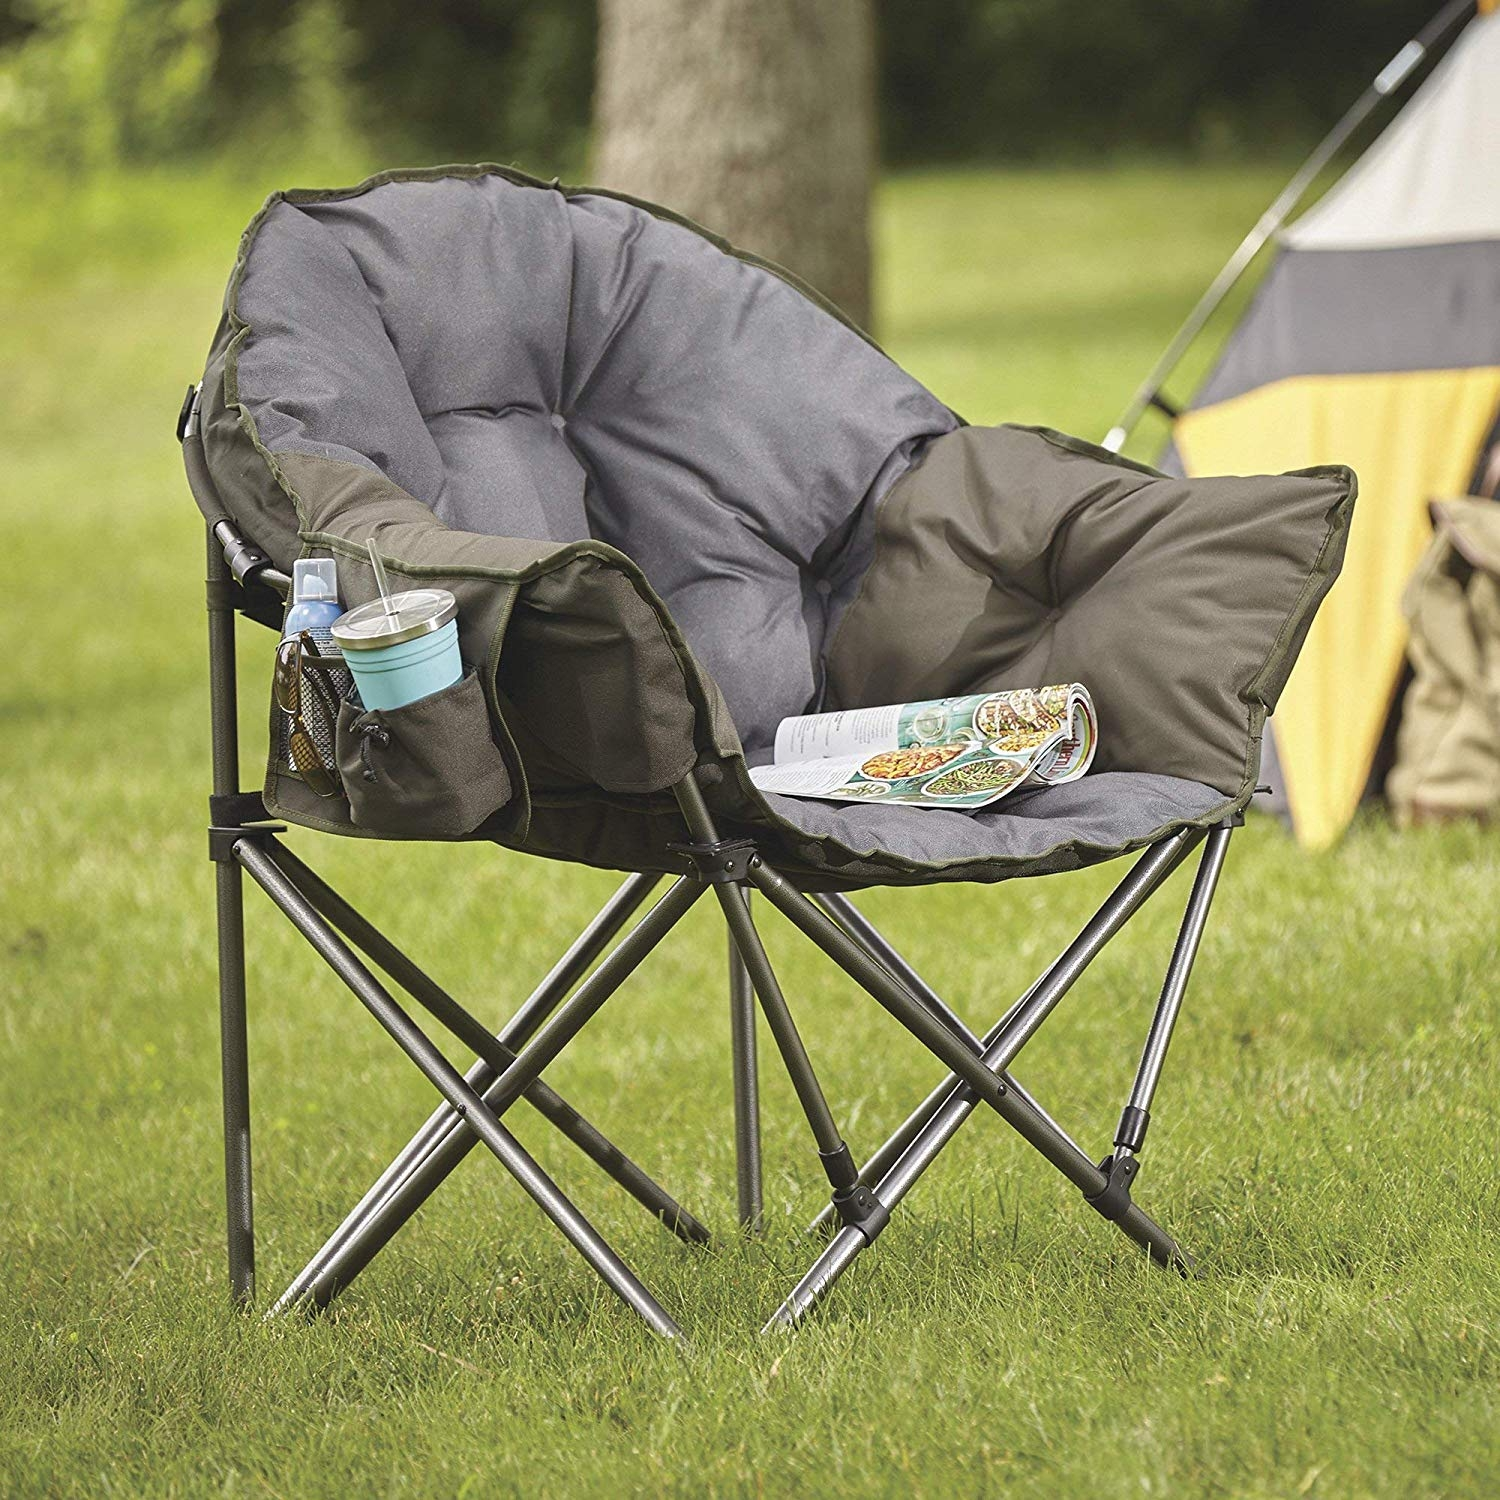 The Most Comfortable Camping Chair Ever Made